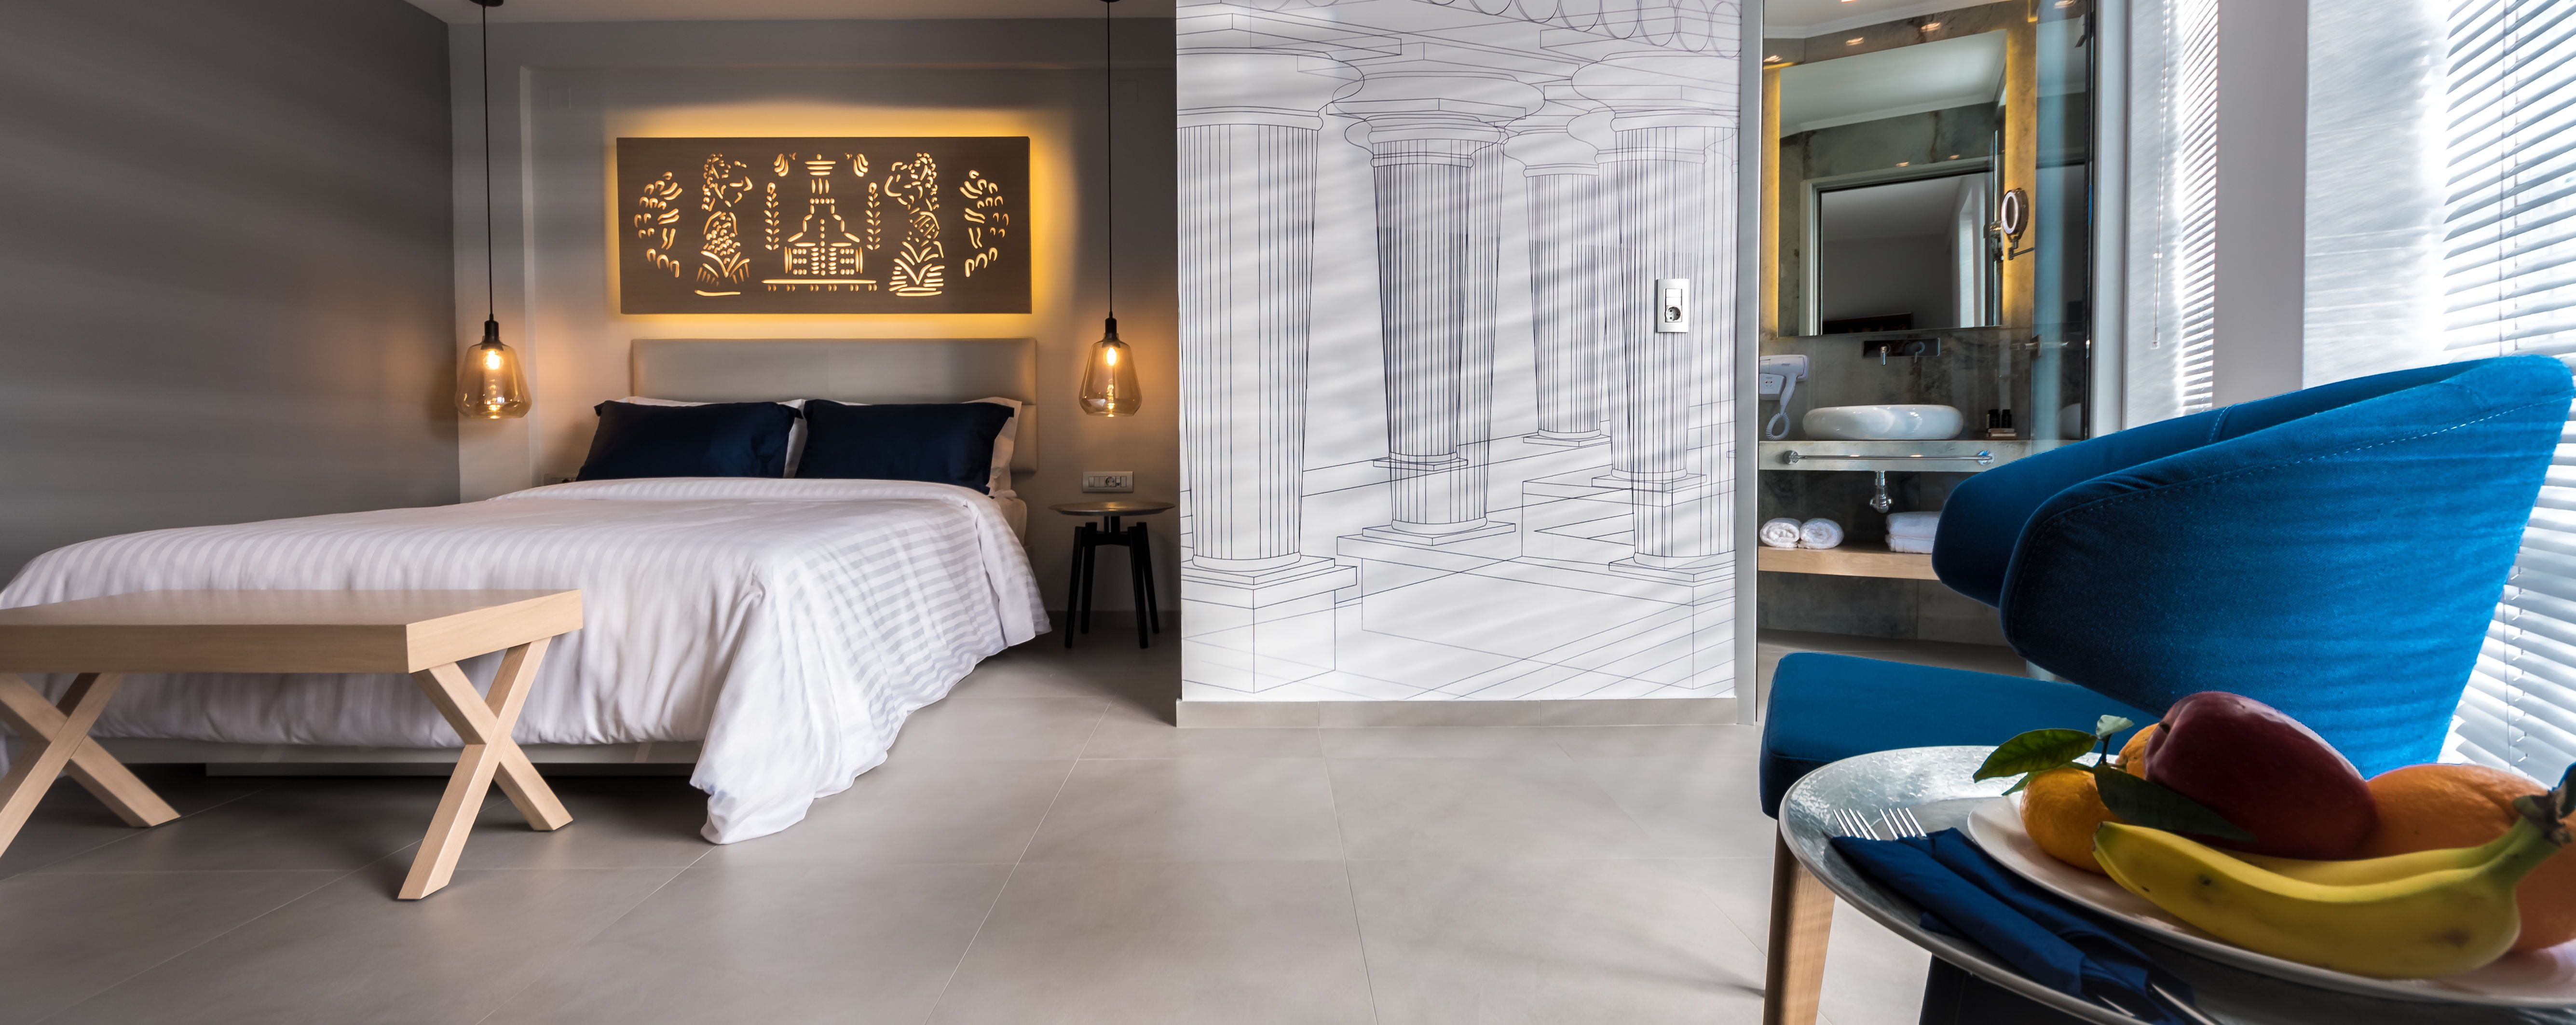 Why Have Table Lamps When You Can Suspend Pendant Lights Over Your Bedside Tables Leaving More Room For Books The Tv R Bedroom Images White Bedding Furniture